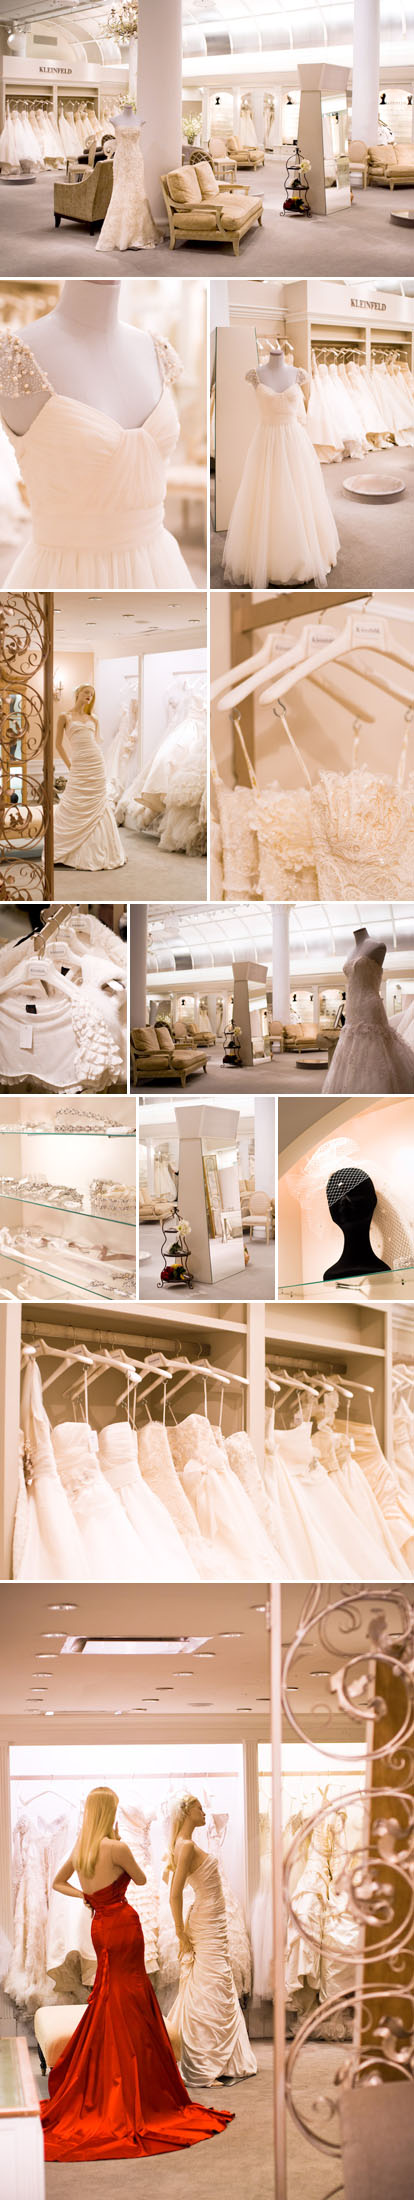 Kleinfeld Bridal, 'Say Yes to the Dress' wedding dress shop in New York City, images by Junebug Weddings